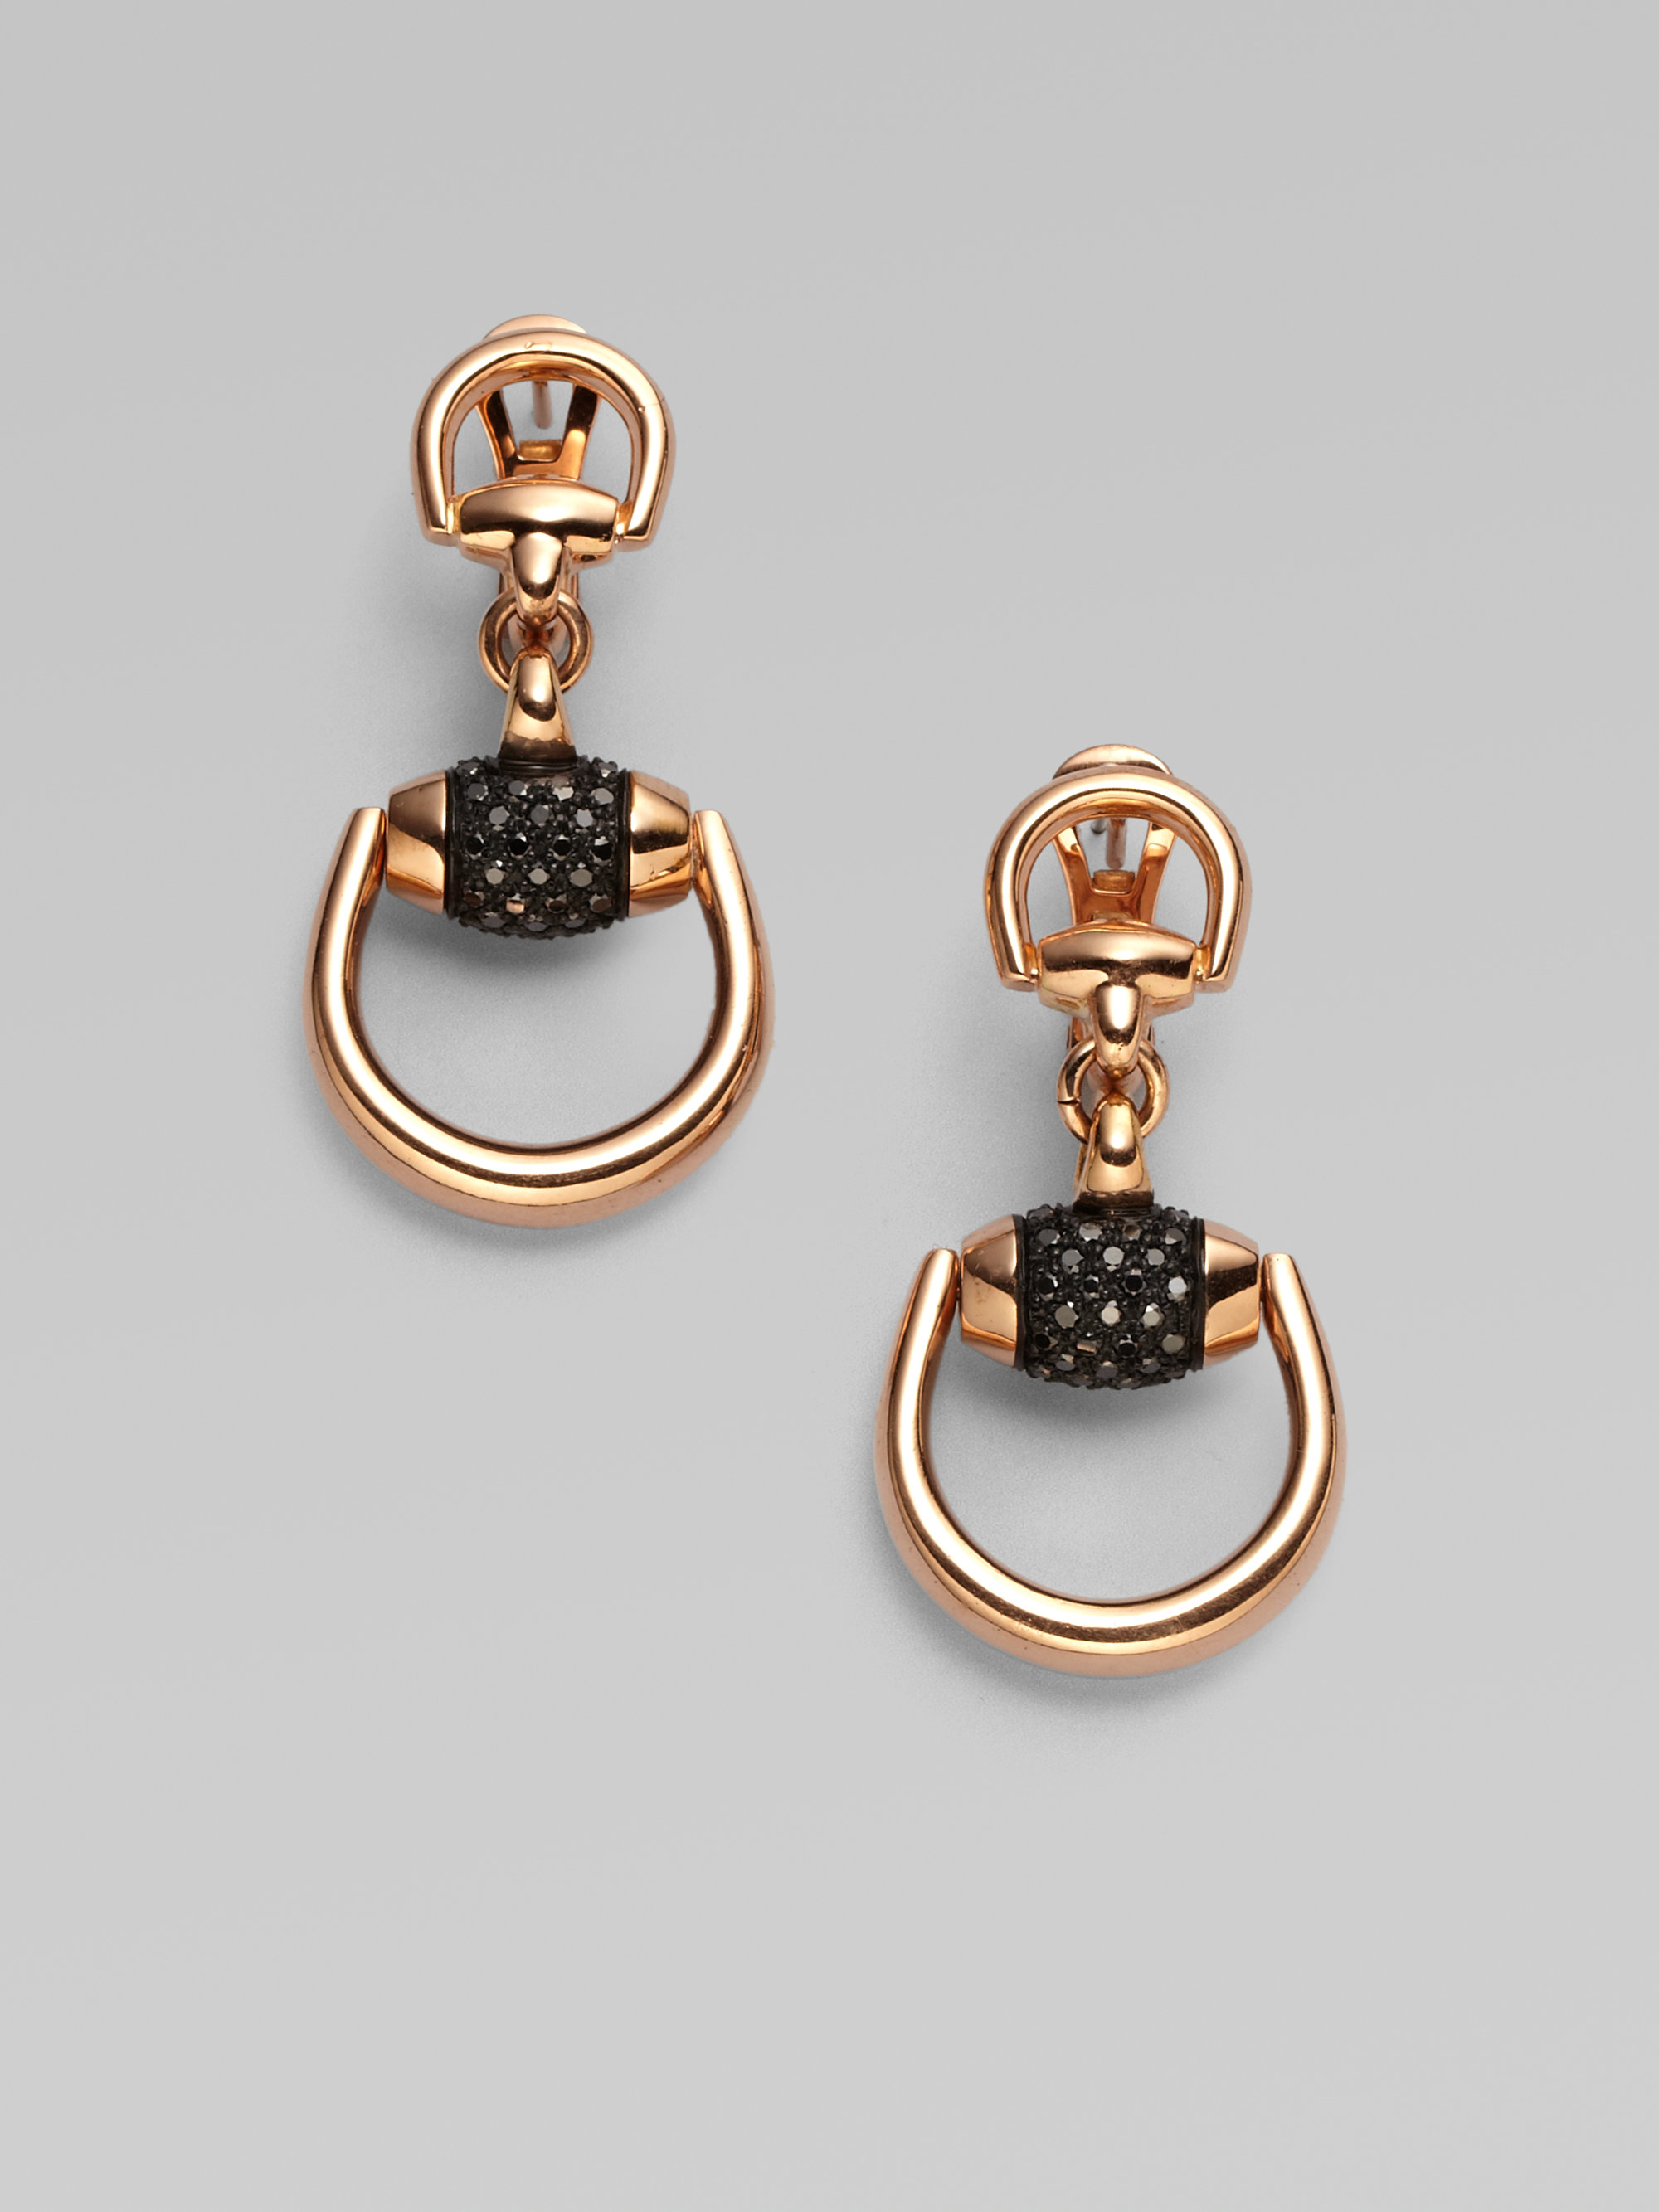 7fea0e1a4 Gucci Horsebit Black Diamond & 18k Rose Gold Drop Earrings in ...